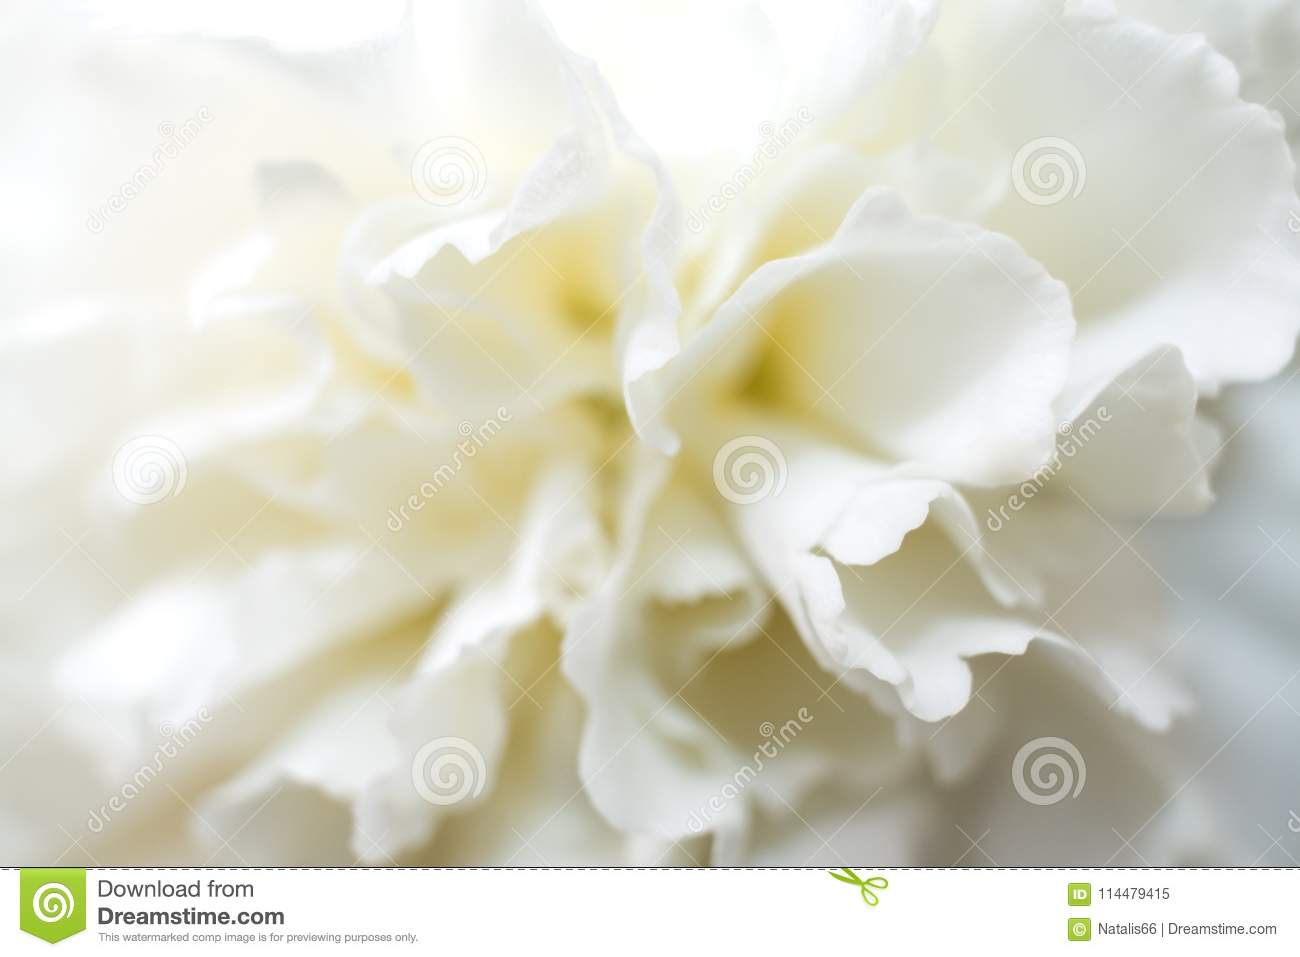 Soft White Carnation Flower With Gentle Petals. Stock Image - Image ...